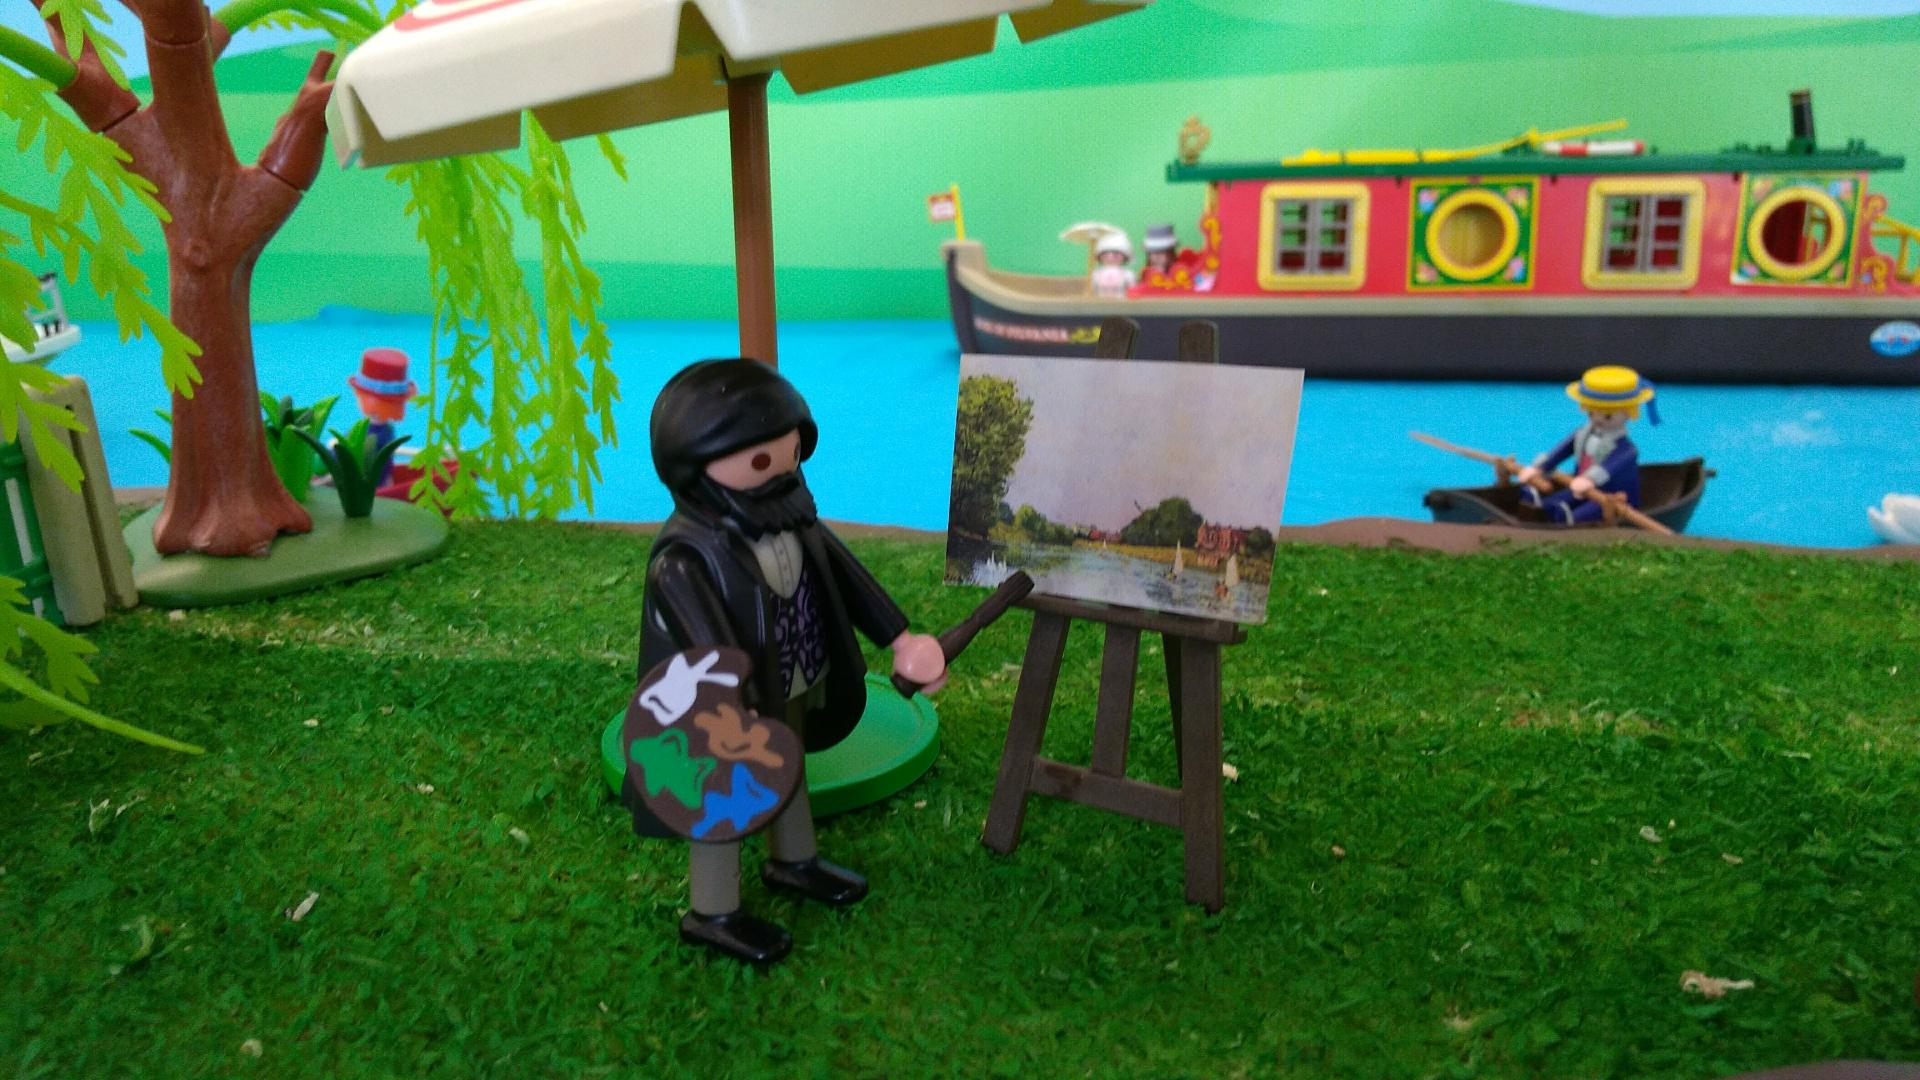 Playmobil alfred sisley dominique bethune exposition bougival